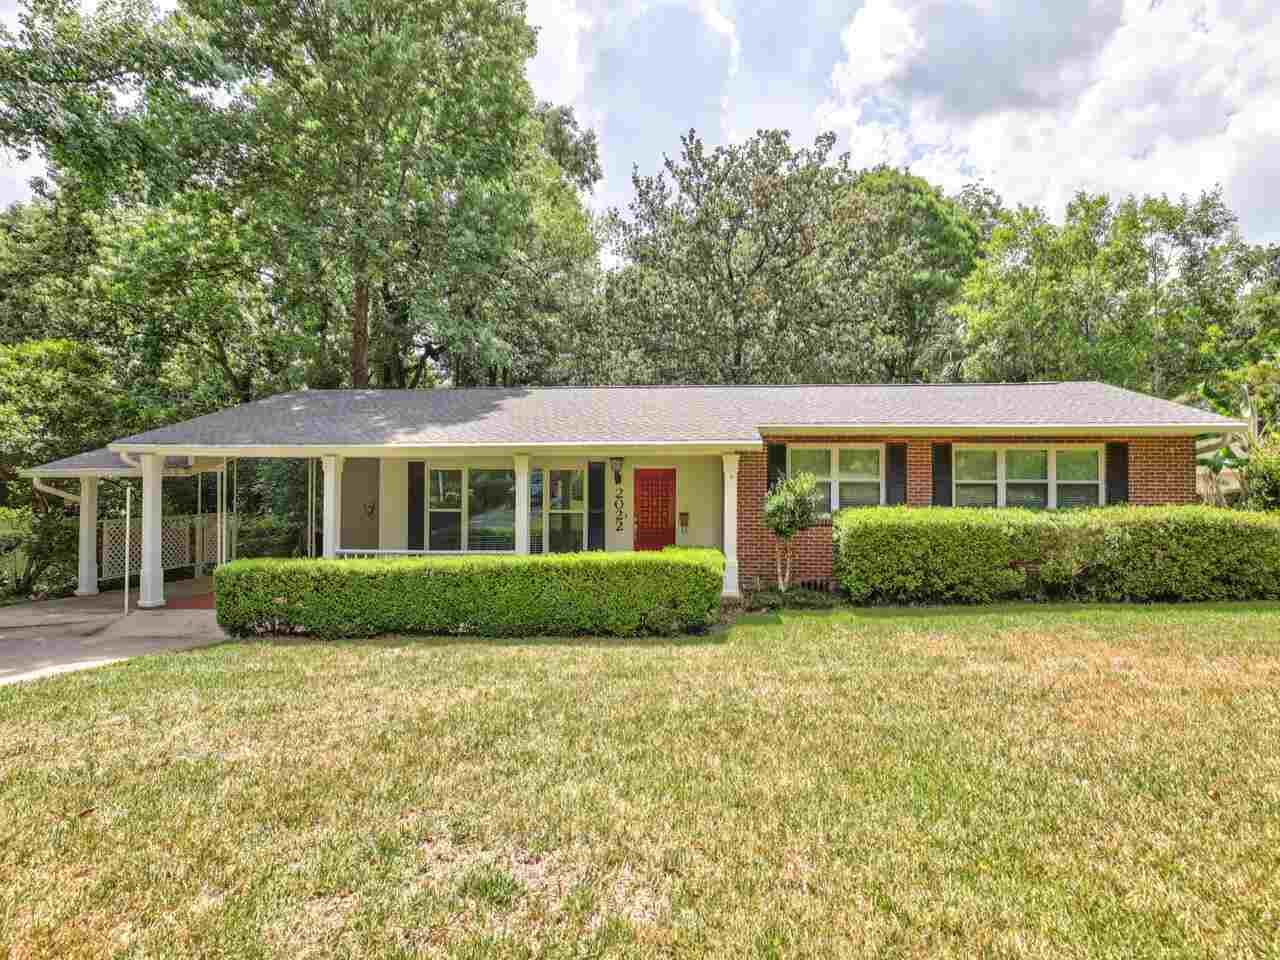 Photo of 2022 E. INDIANHEAD DRIVE, TALLAHASSEE, FL 32301 (MLS # 333510)